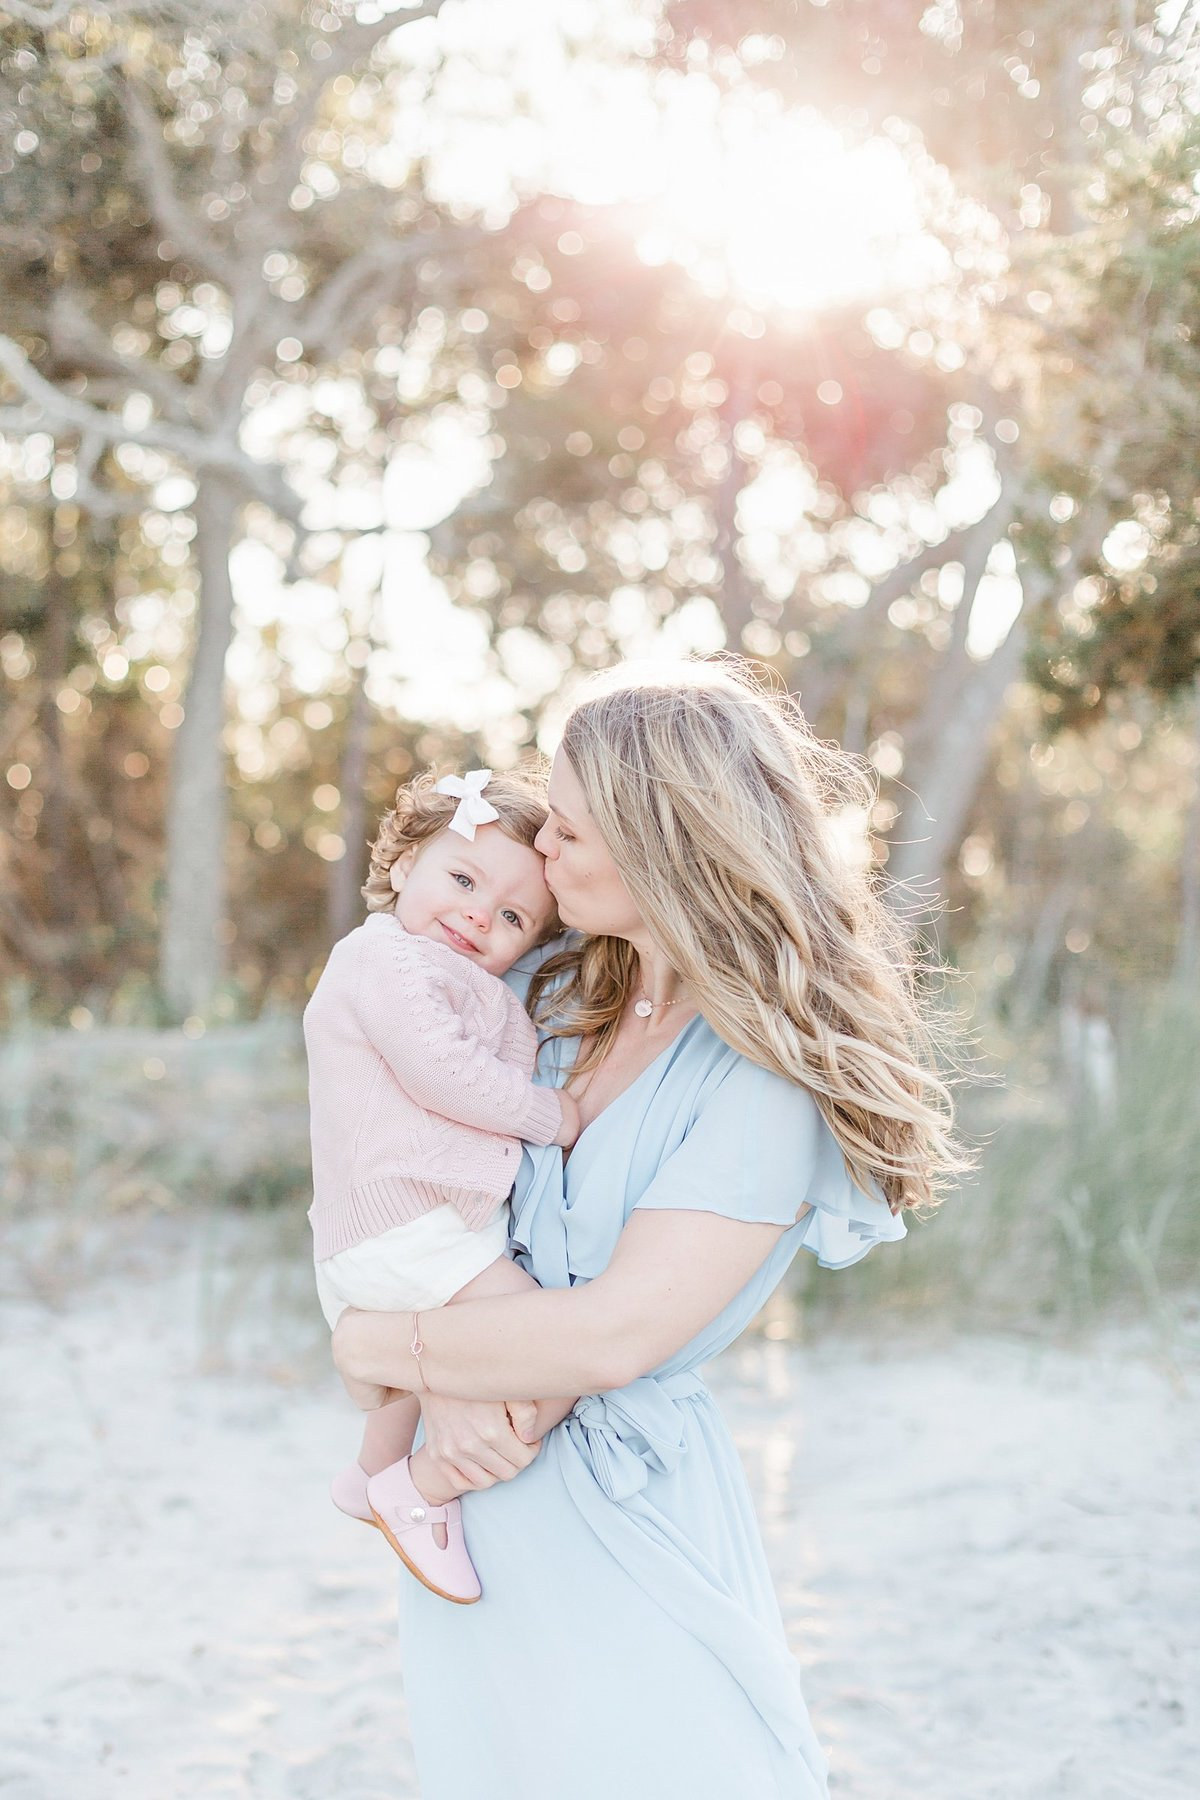 Charleston-Family-Photographer-Folly-Beach-Photographer-Beach-Photography-Charleston-Family-Session-03